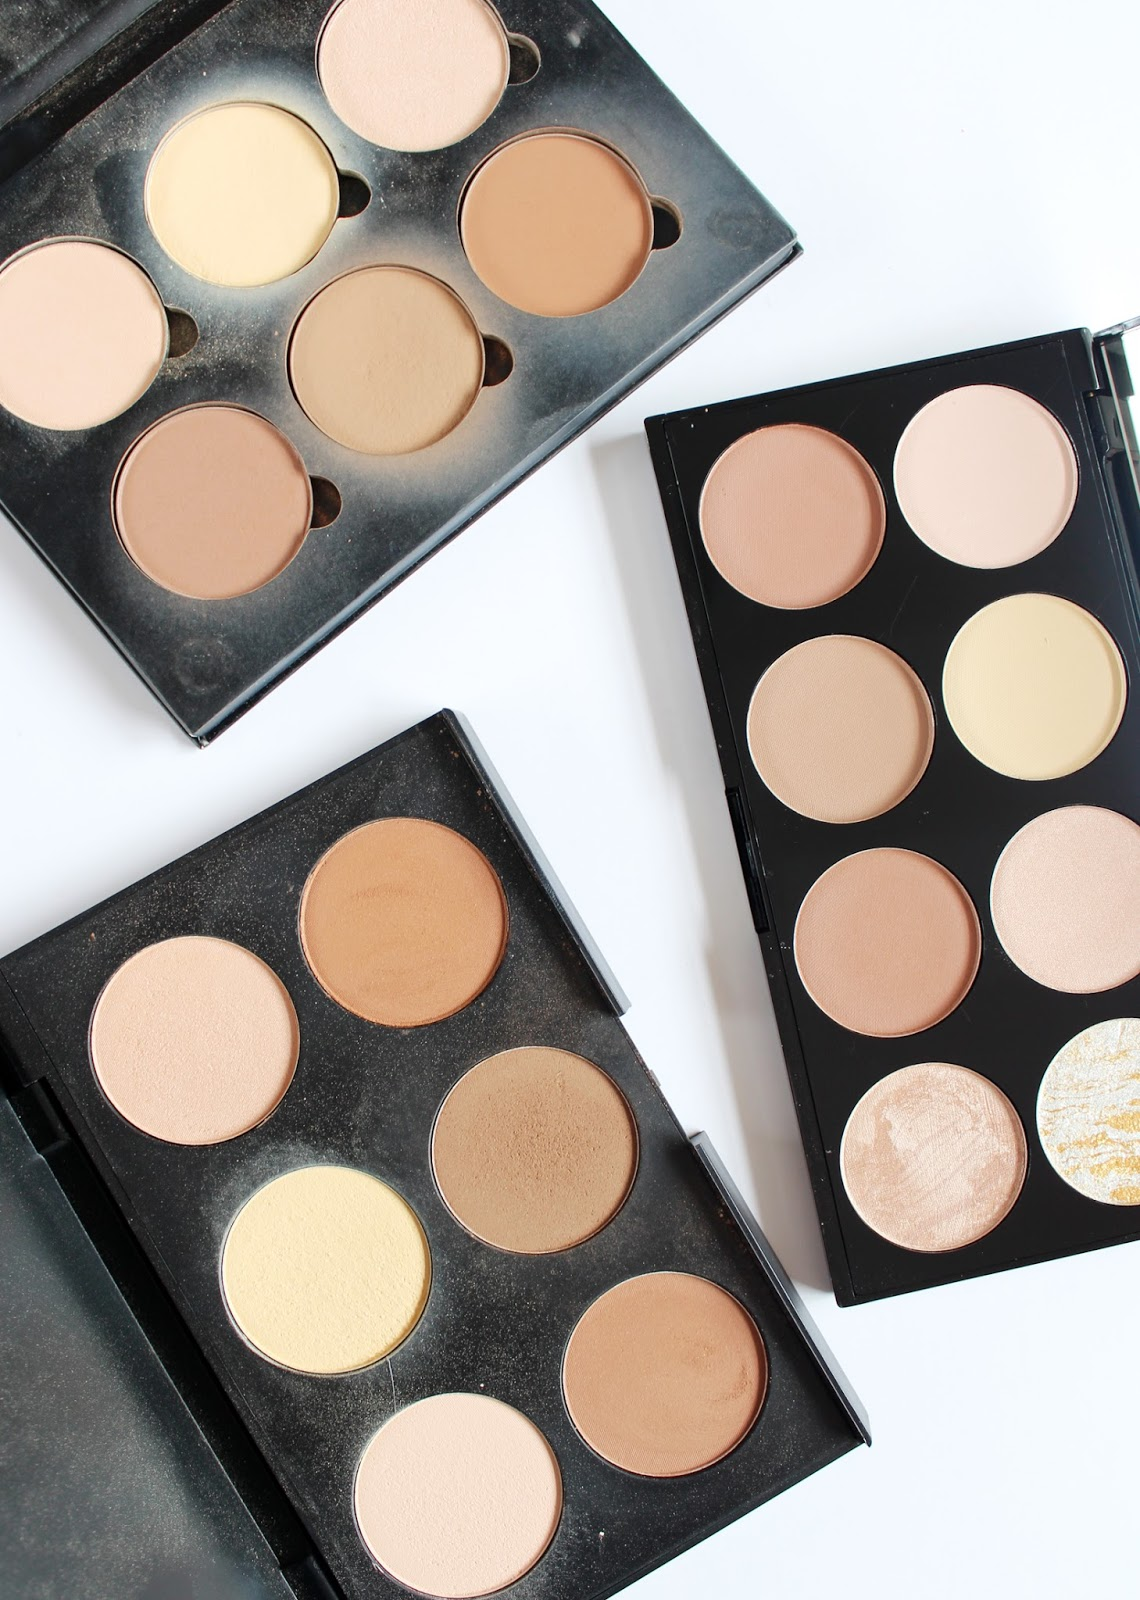 MAKEUP REVOLUTION | Ultra Contour Palette - Review + Swatches - CassandraMyee